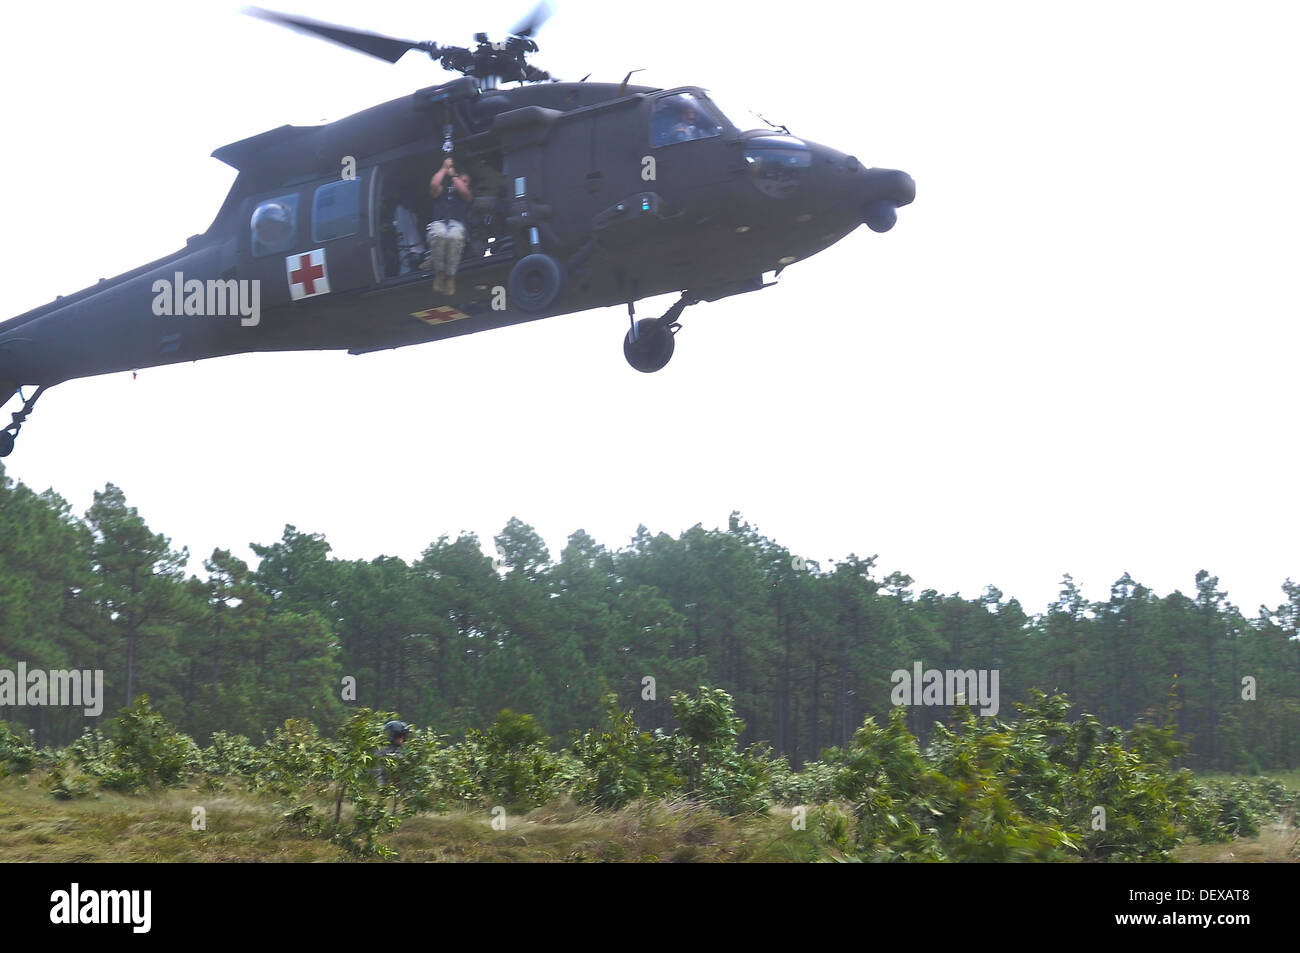 Paratroopers of the 82nd Airborne Division's 2nd Brigade Combat Team and Combat Aviation Brigade evacuate a simulated casualty during medevac hoist training as part of the 2nd Battalion, 325th Airborne Infantry Regiment's intensive training cycle on Fort - Stock Image